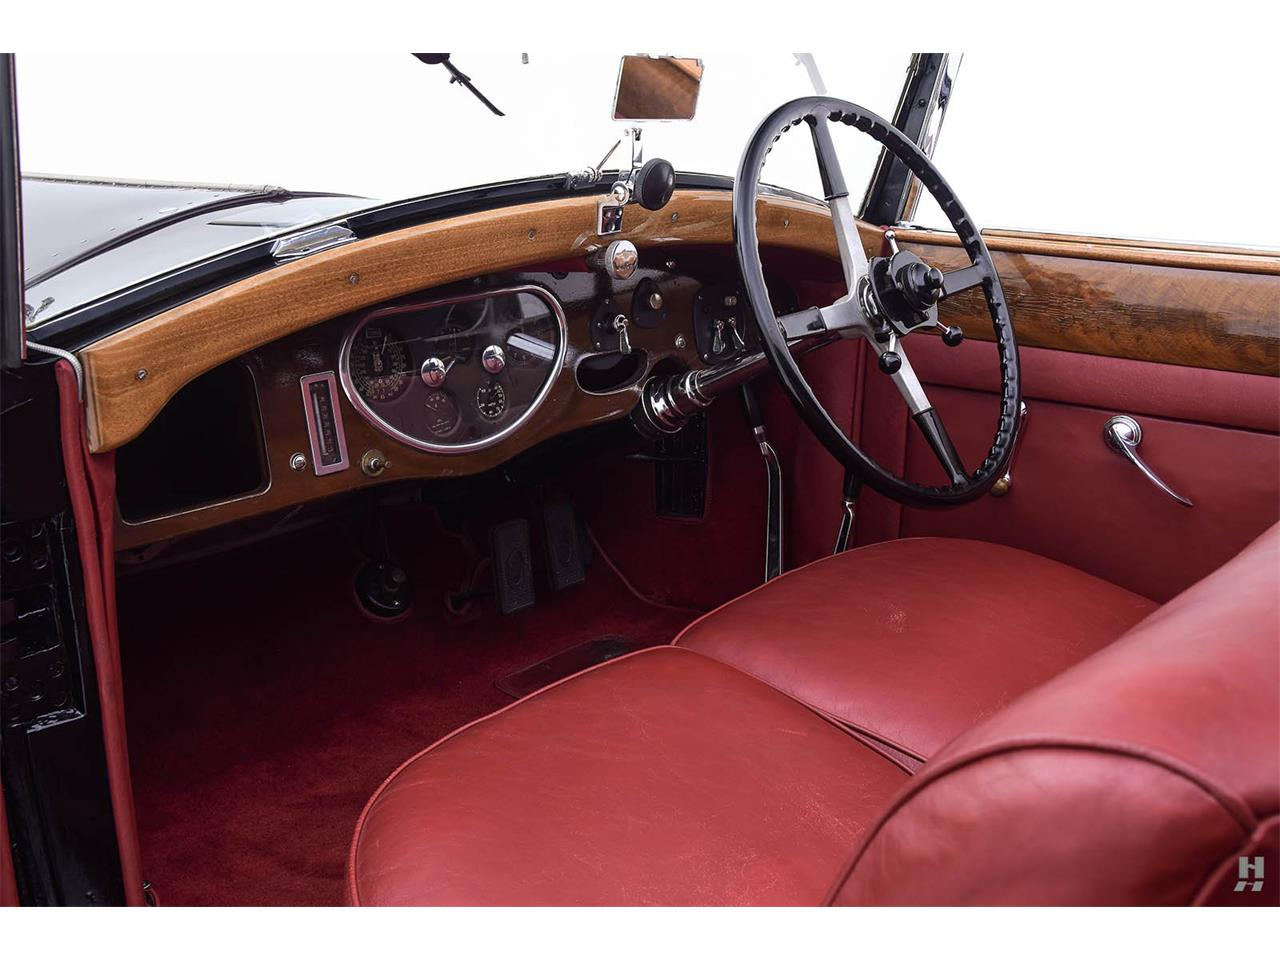 Large Picture of '34 Rolls-Royce Phantom II located in Missouri - $475,000.00 Offered by Hyman Ltd. Classic Cars - JHVW